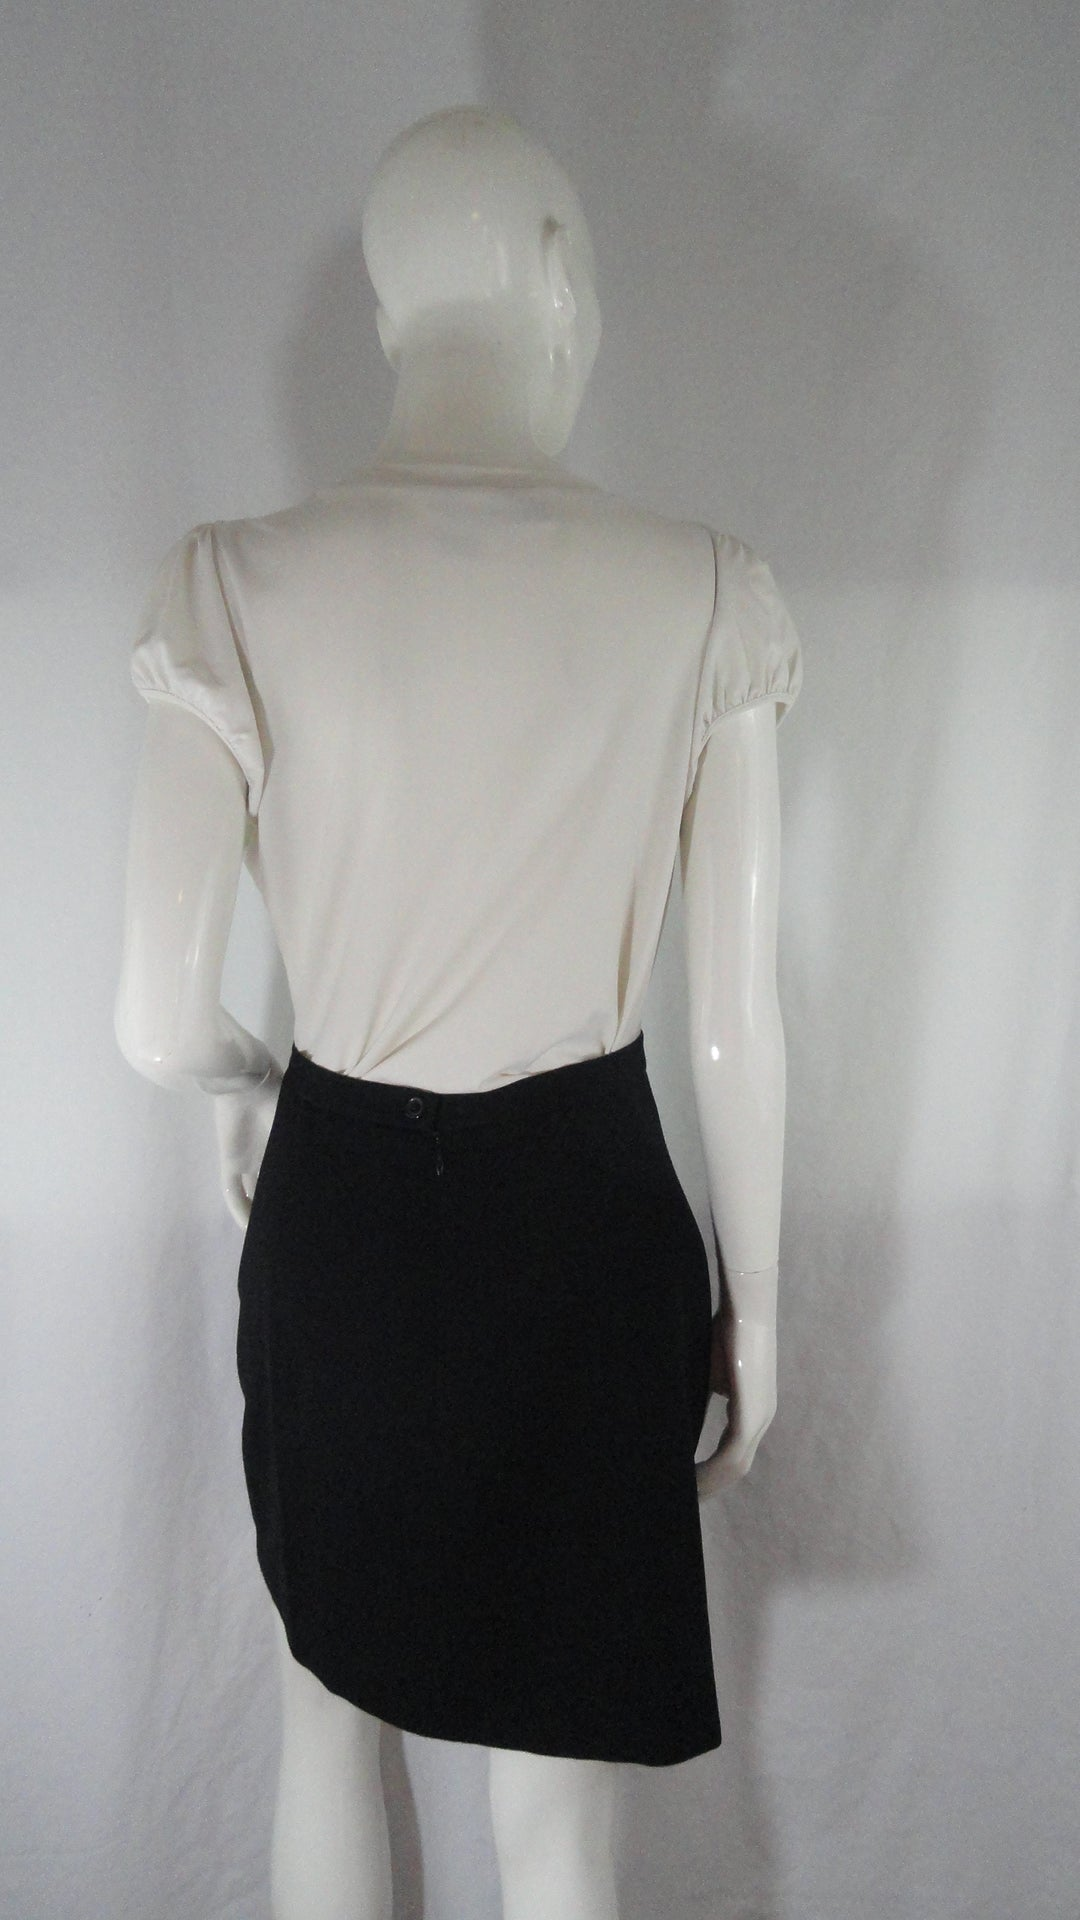 Ralph Lauren Black Skirt Size 8 (SKU 000041)